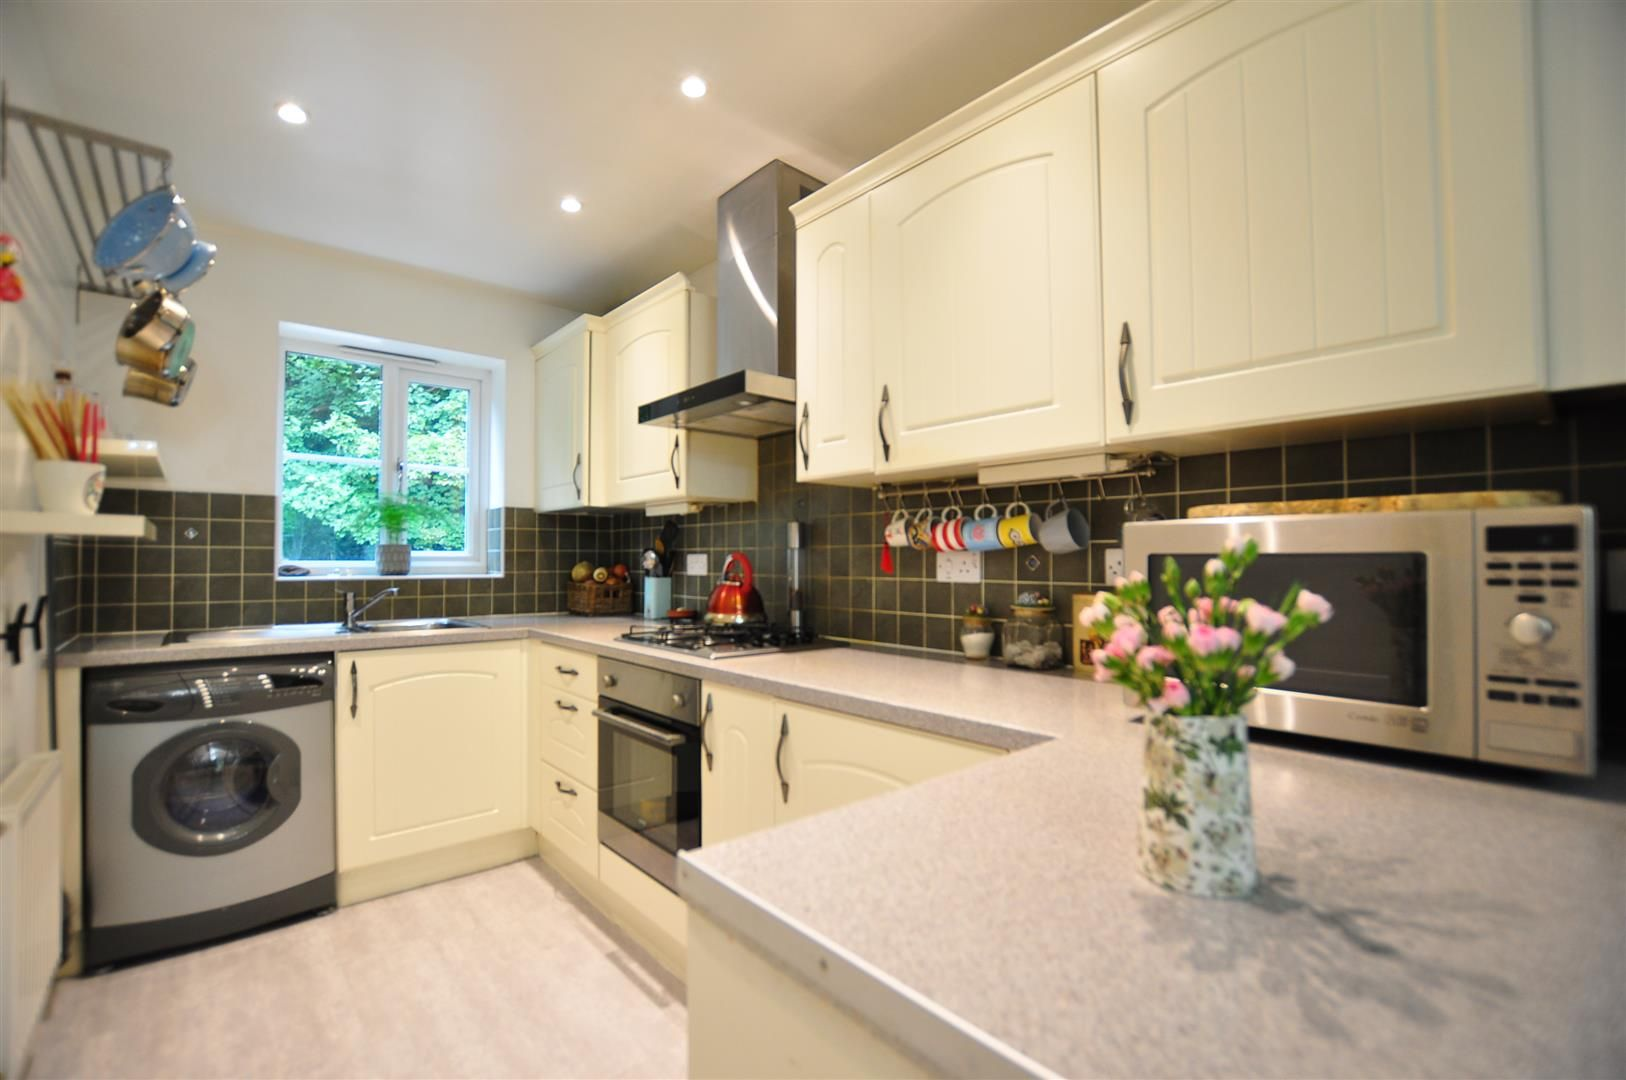 4 bed end-of-terrace for sale  - Property Image 5